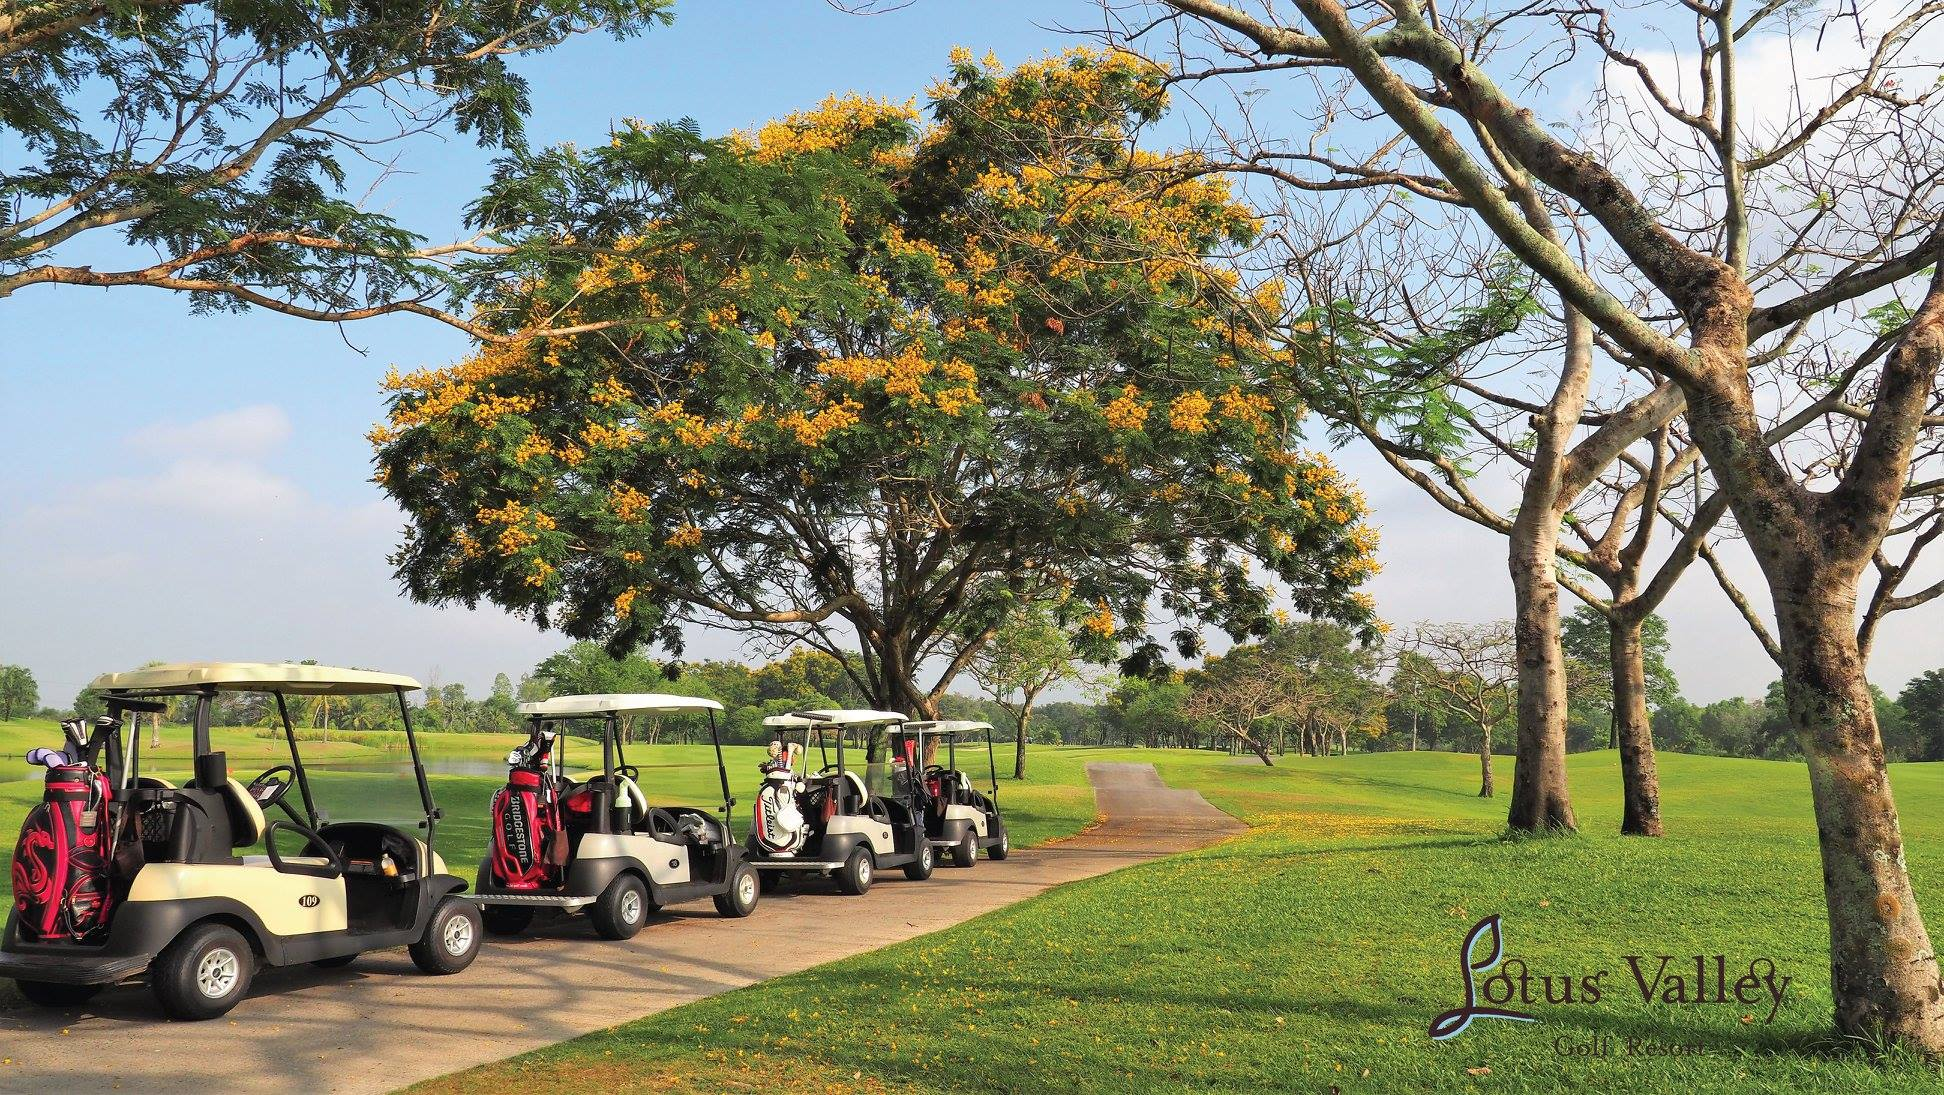 Lotus Valley Golf Course Chachoengsao